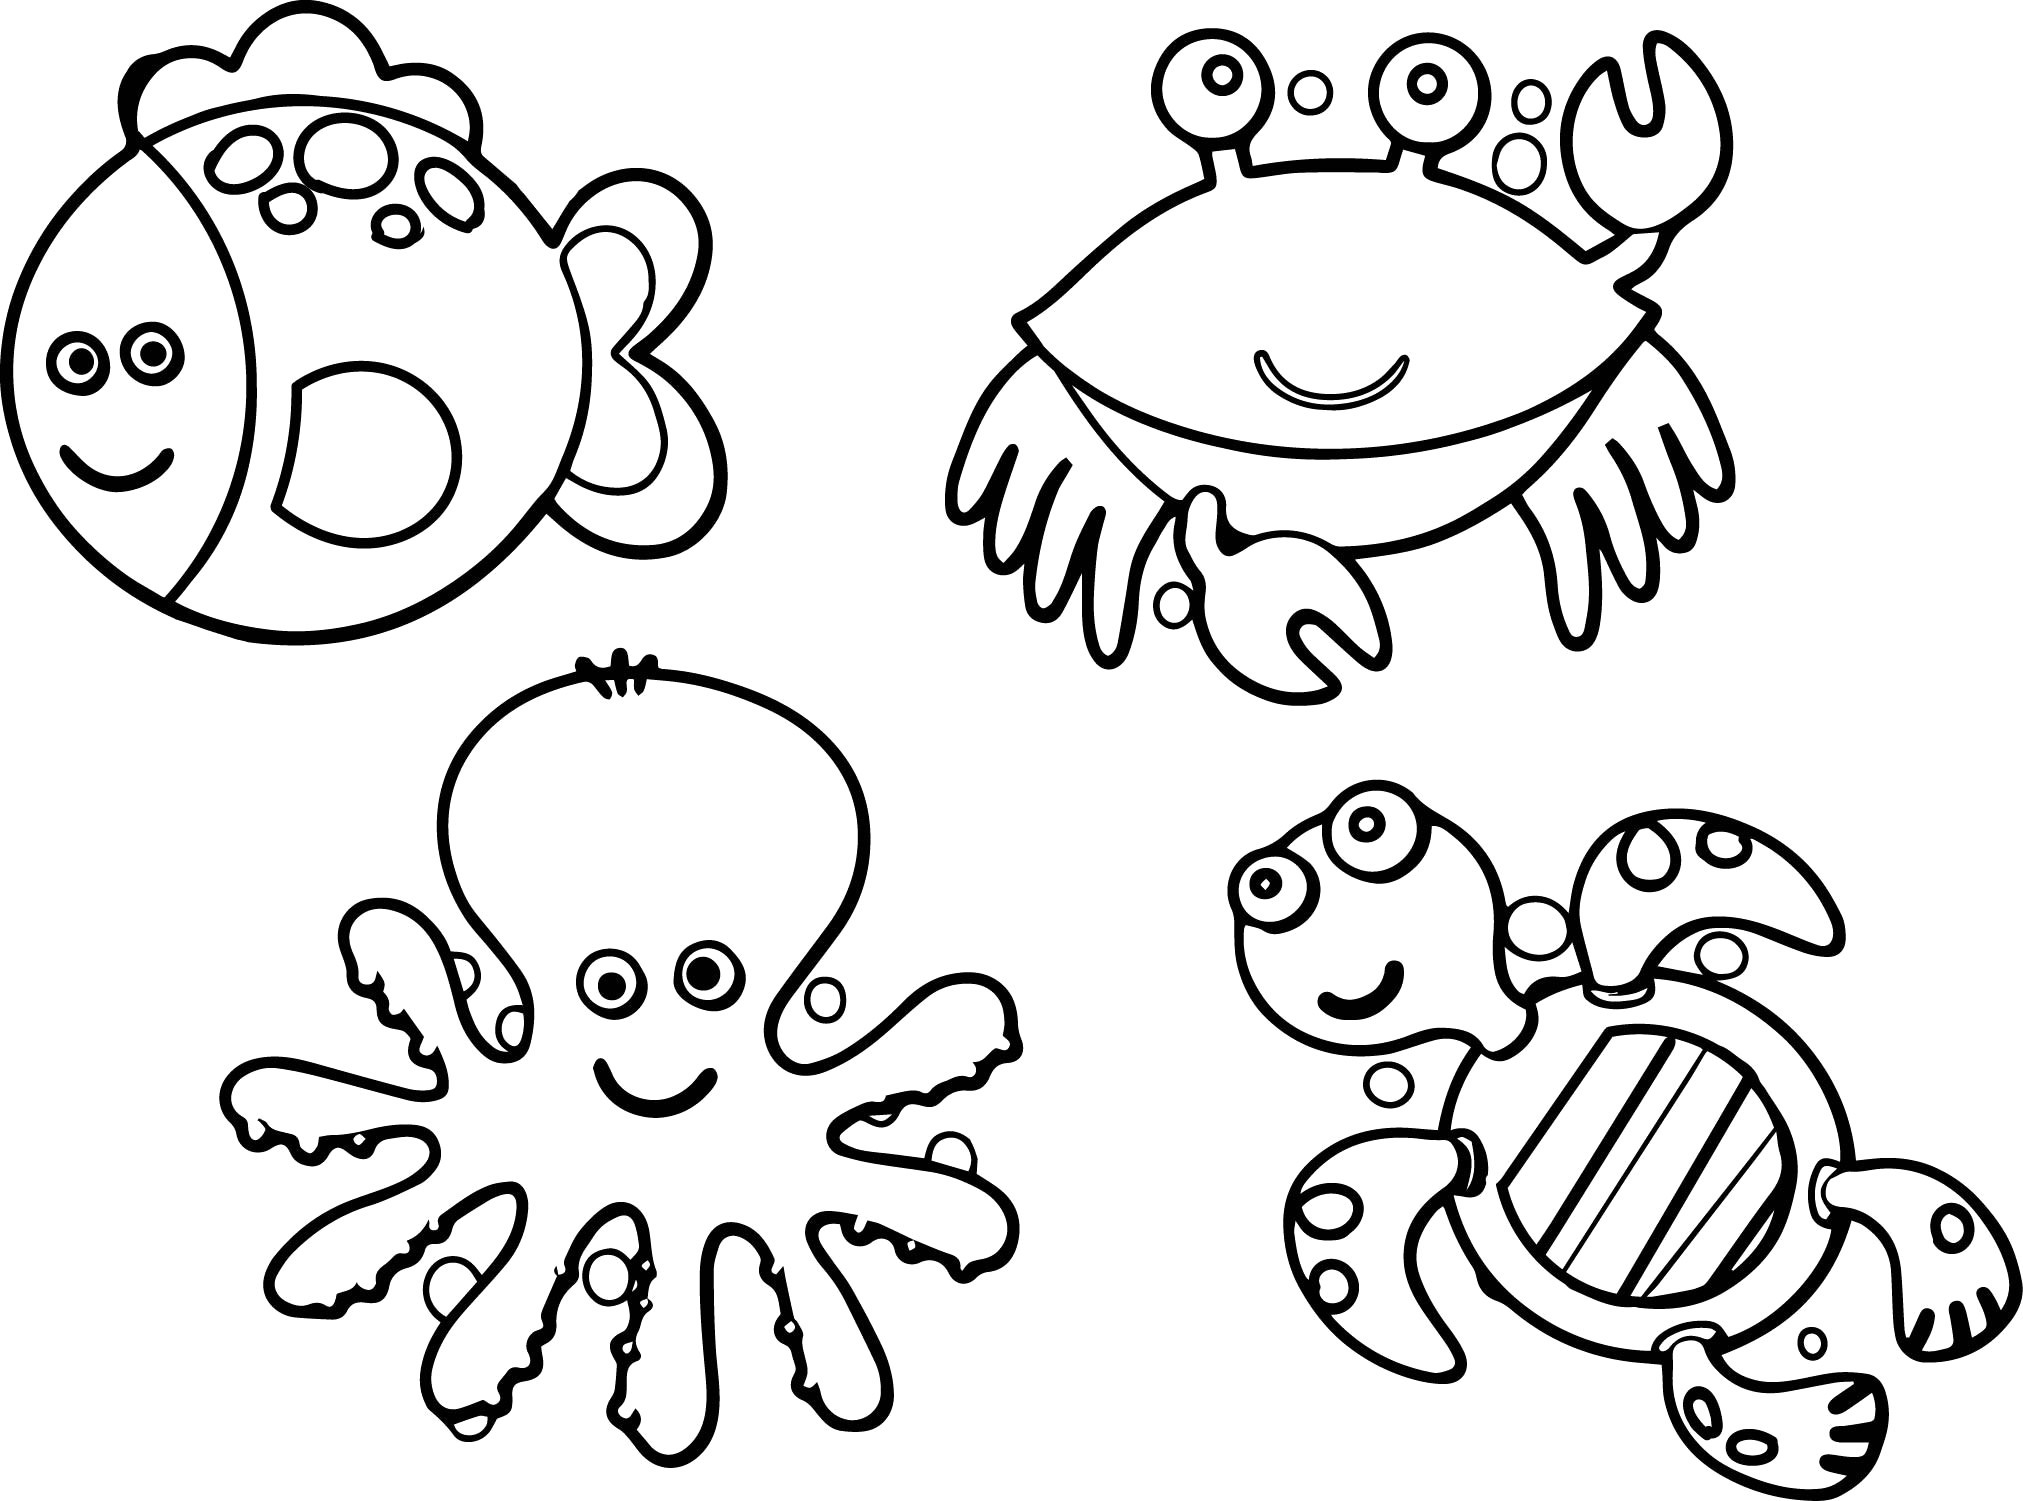 Realistic Sea Life Coloring Pages at GetColorings.com